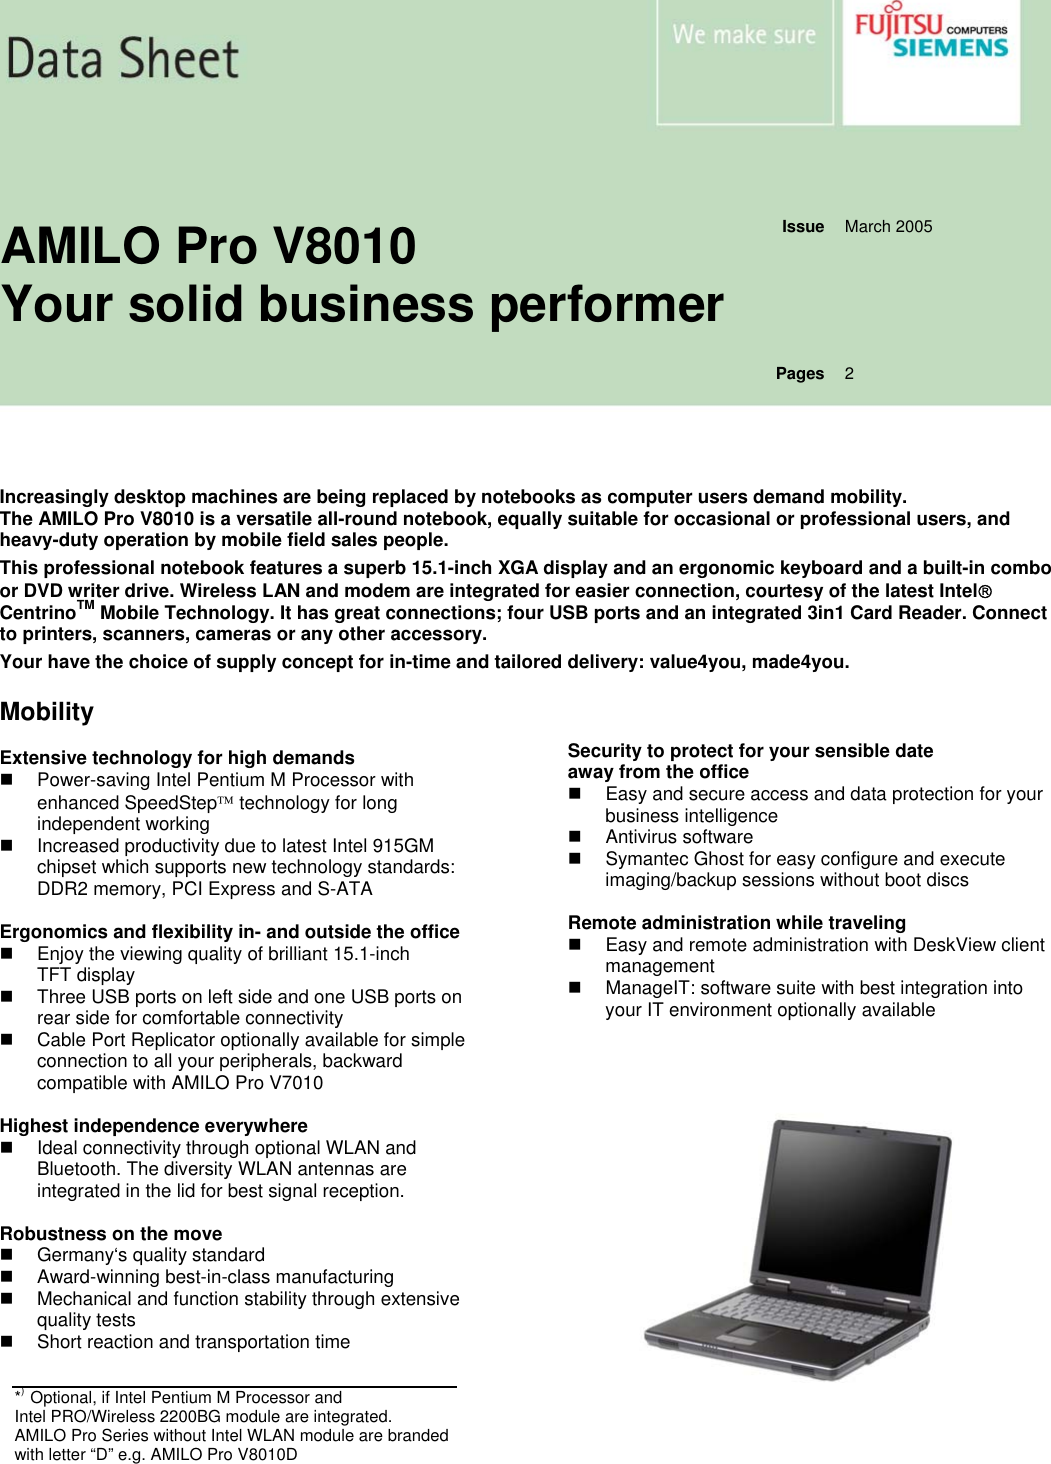 AMILO PRO V8010 BLUETOOTH DRIVER DOWNLOAD